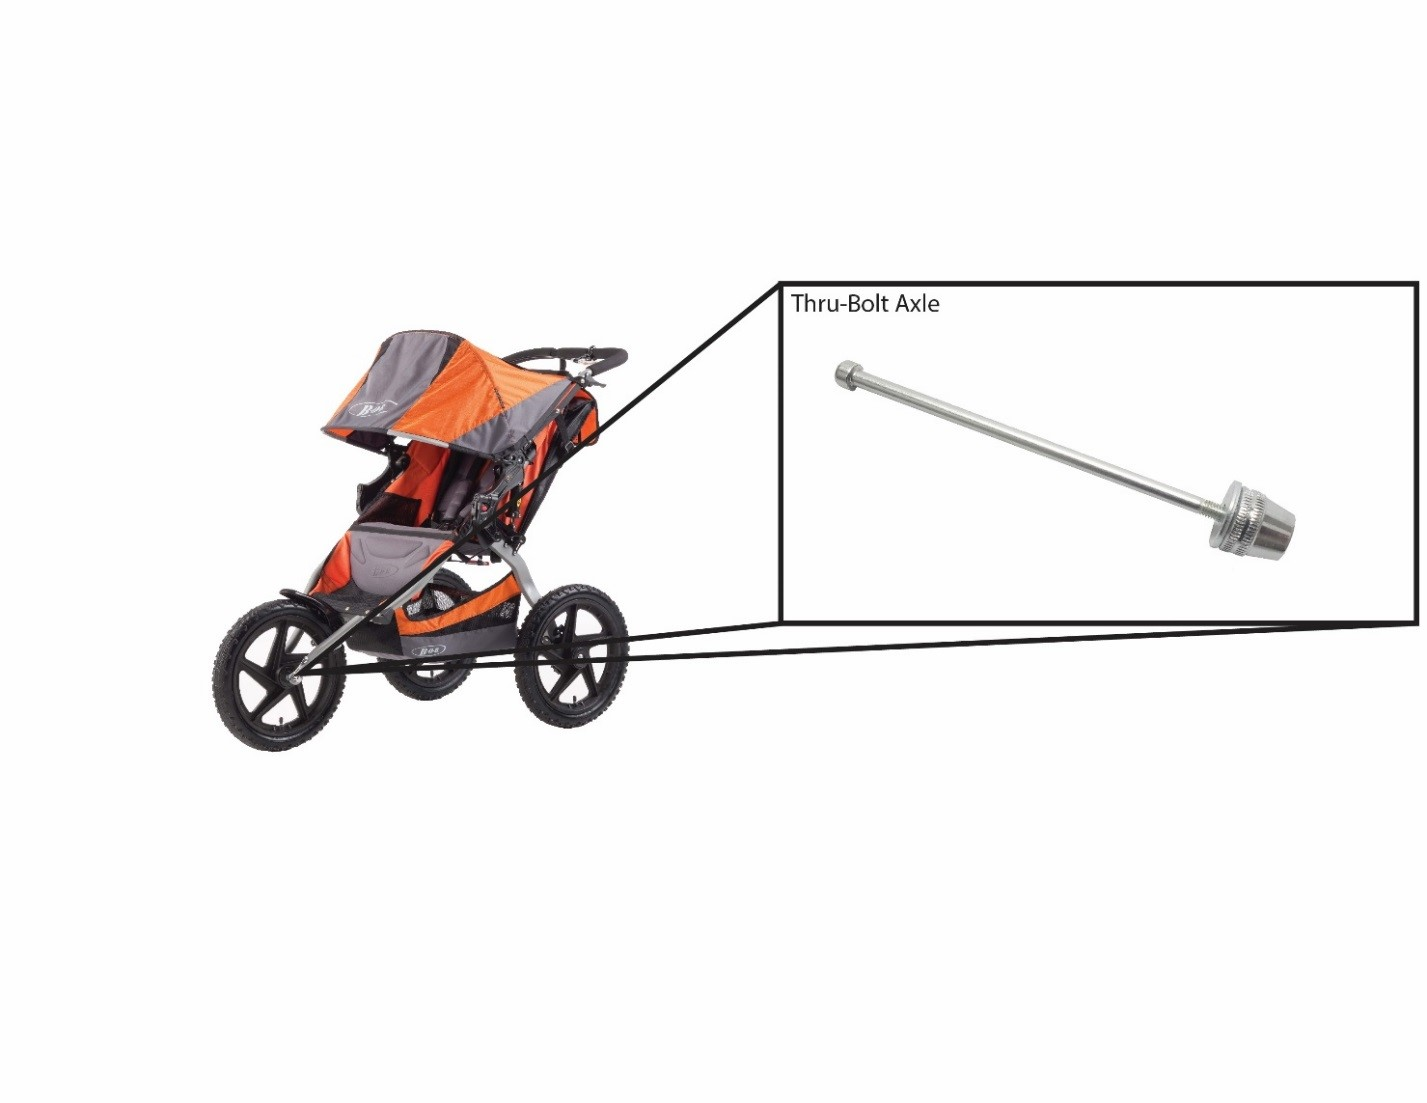 Jogging Stroller How To Use Britax Recalls Modified Thru Bolt Axles For Use With Bob